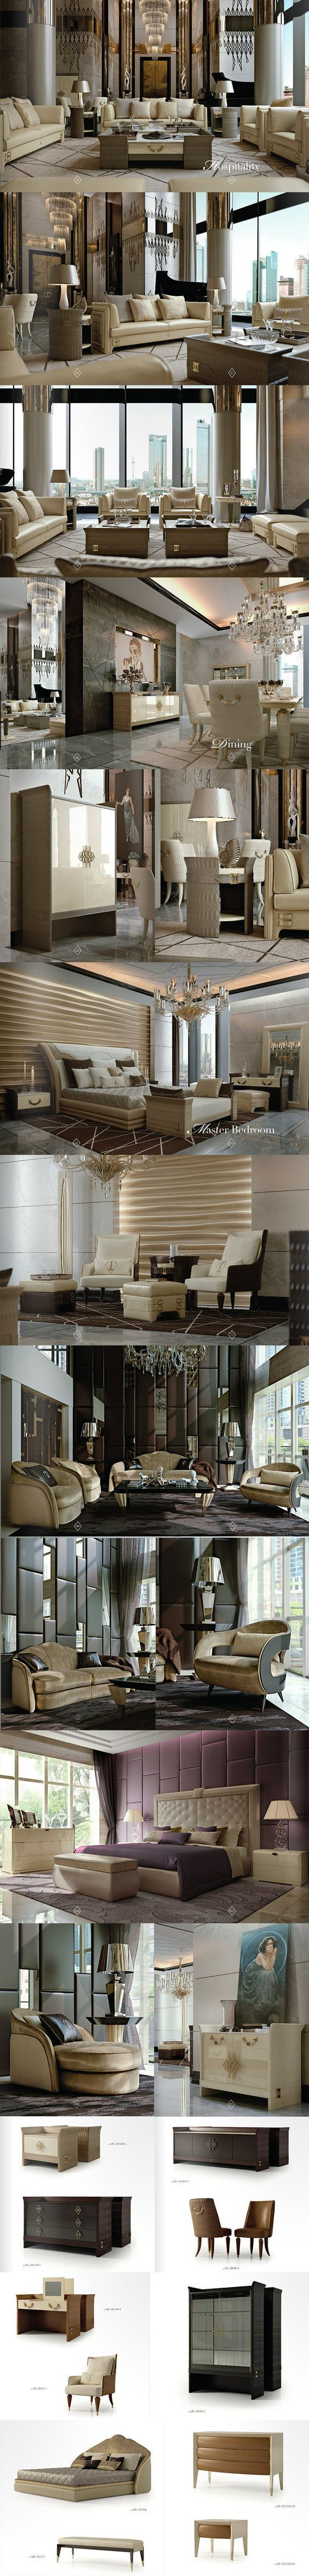 Lighting Stores In New York The City Of Dreams Light Up For You Luxury Furniture House Design Luxury Decor